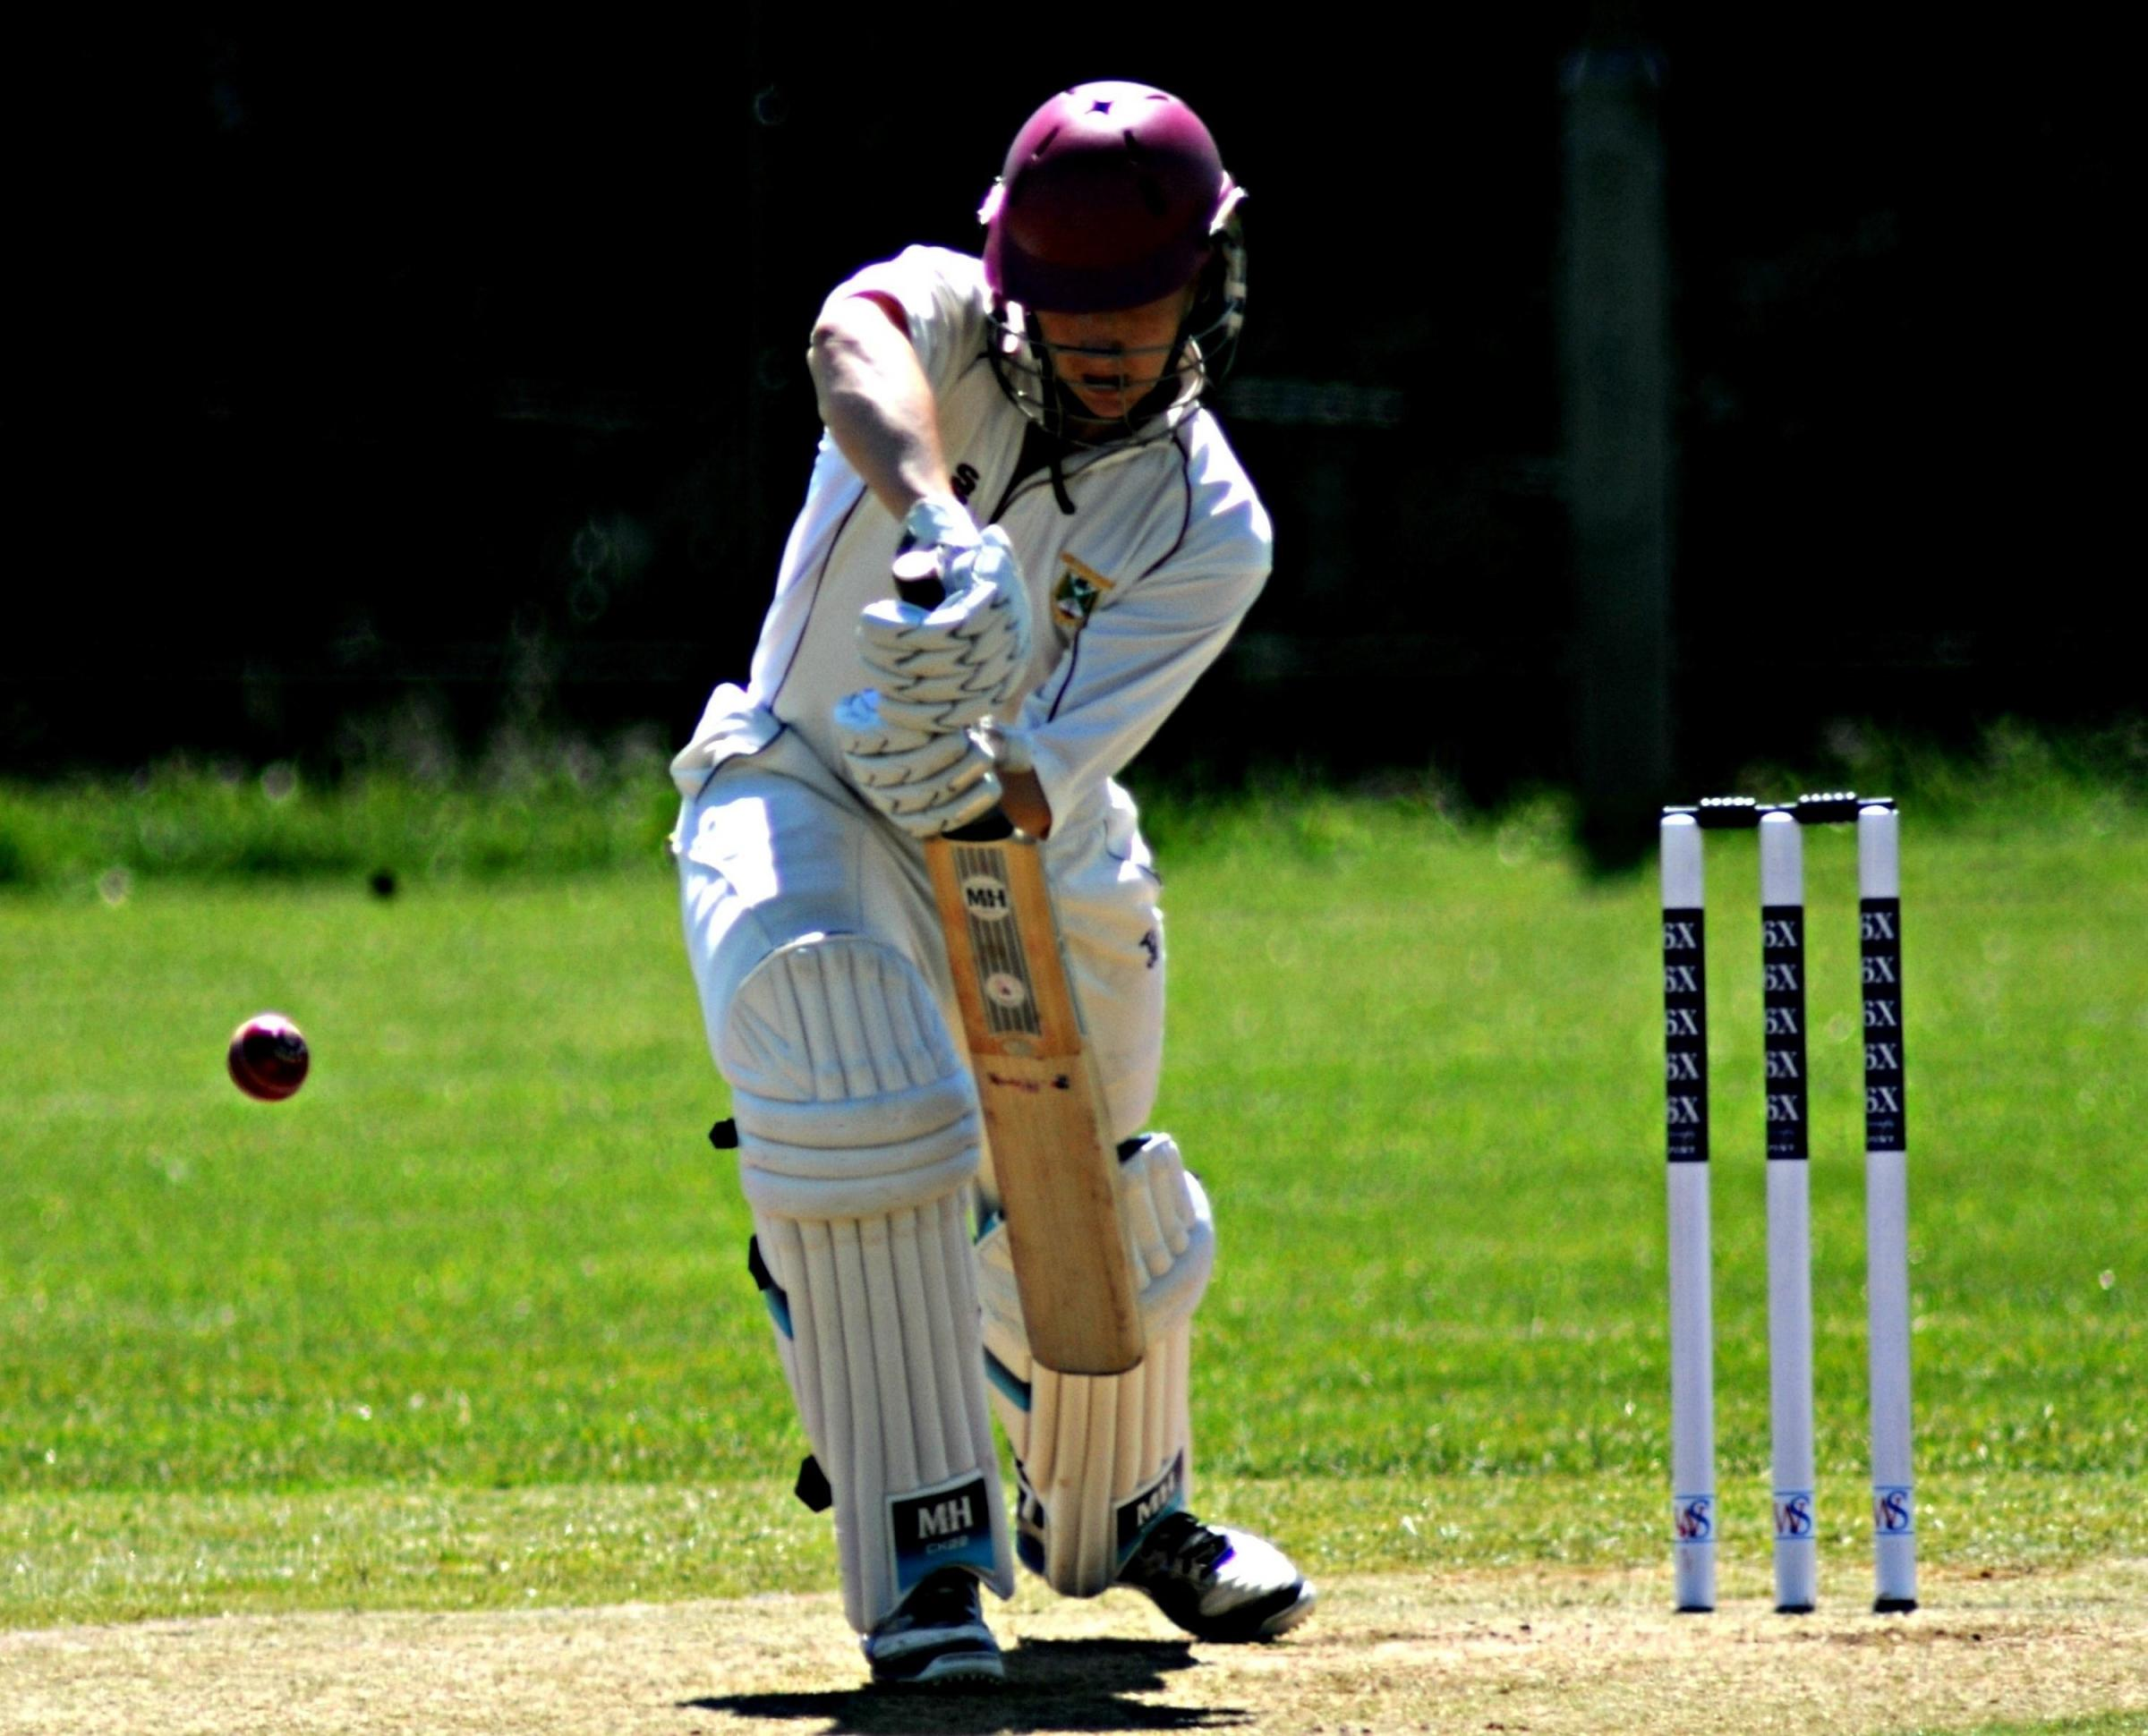 James Bracey batting for Winterbourne against Shirehampton